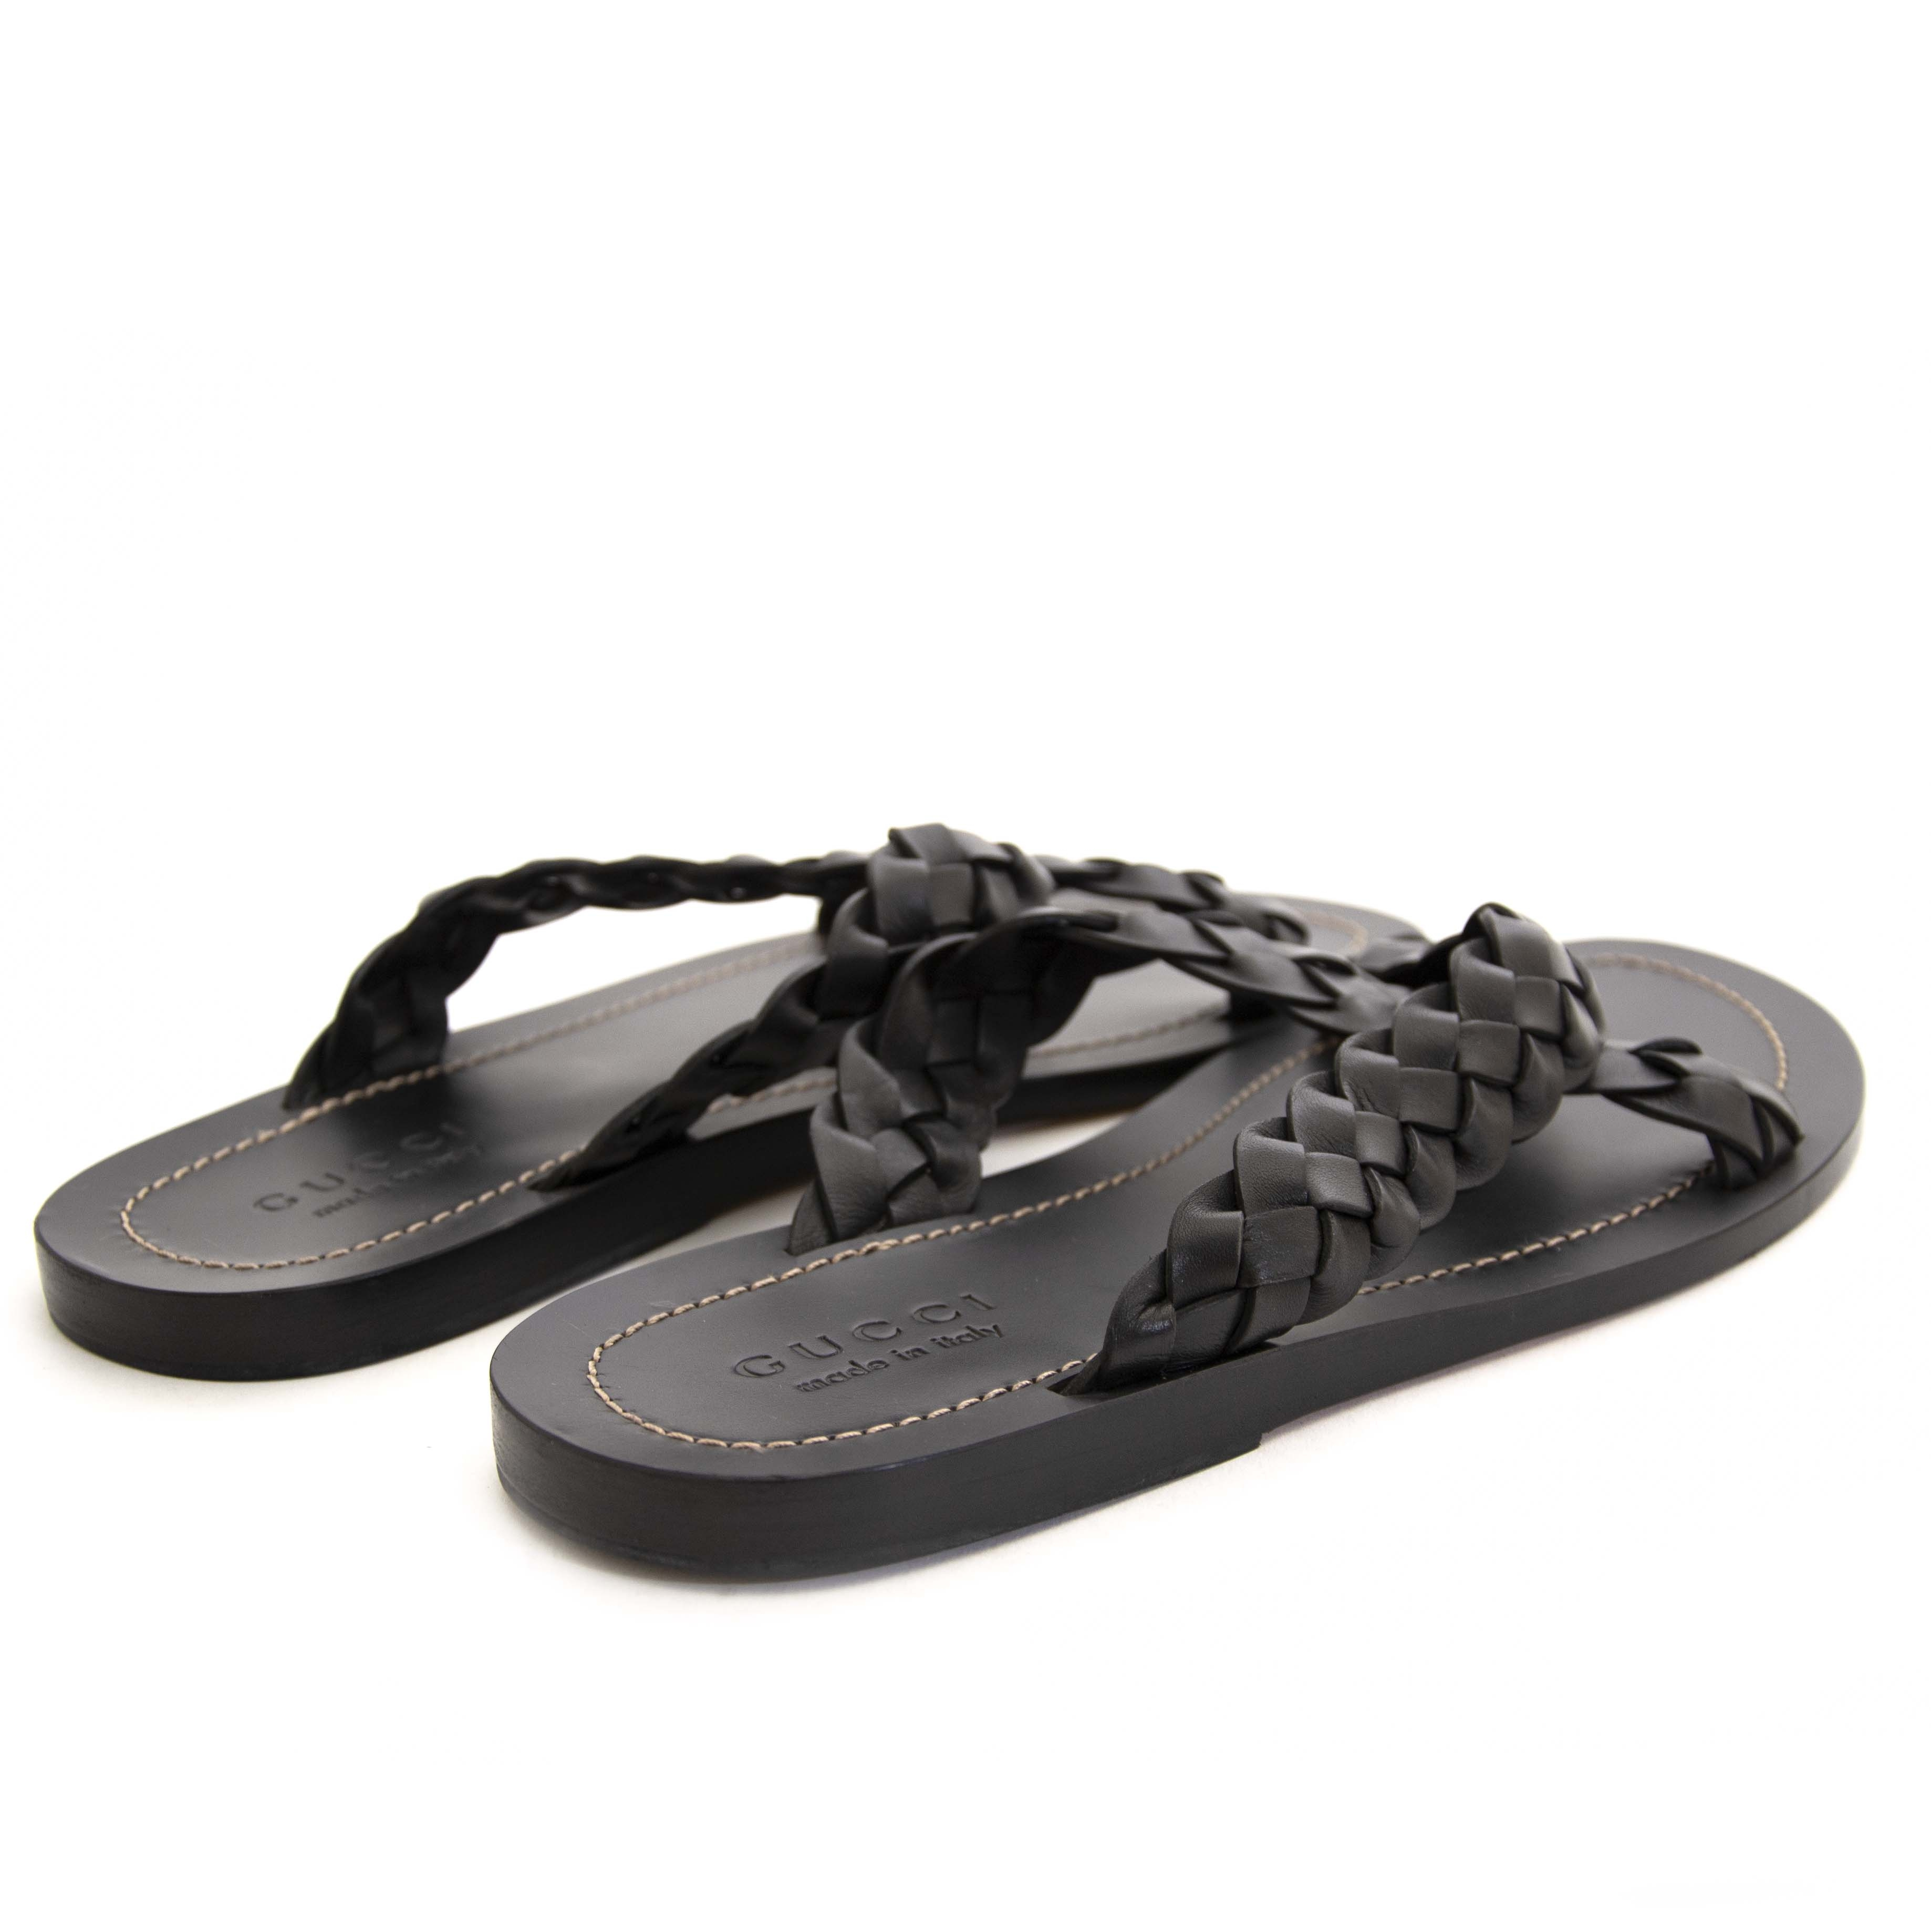 8a5a62e0b87 Buy authentic secondhand Gucci shoes at Gucci Black Leather Crossover  Slides Unisex - Size 41. Buy authentic secondhand Gucci shoes at